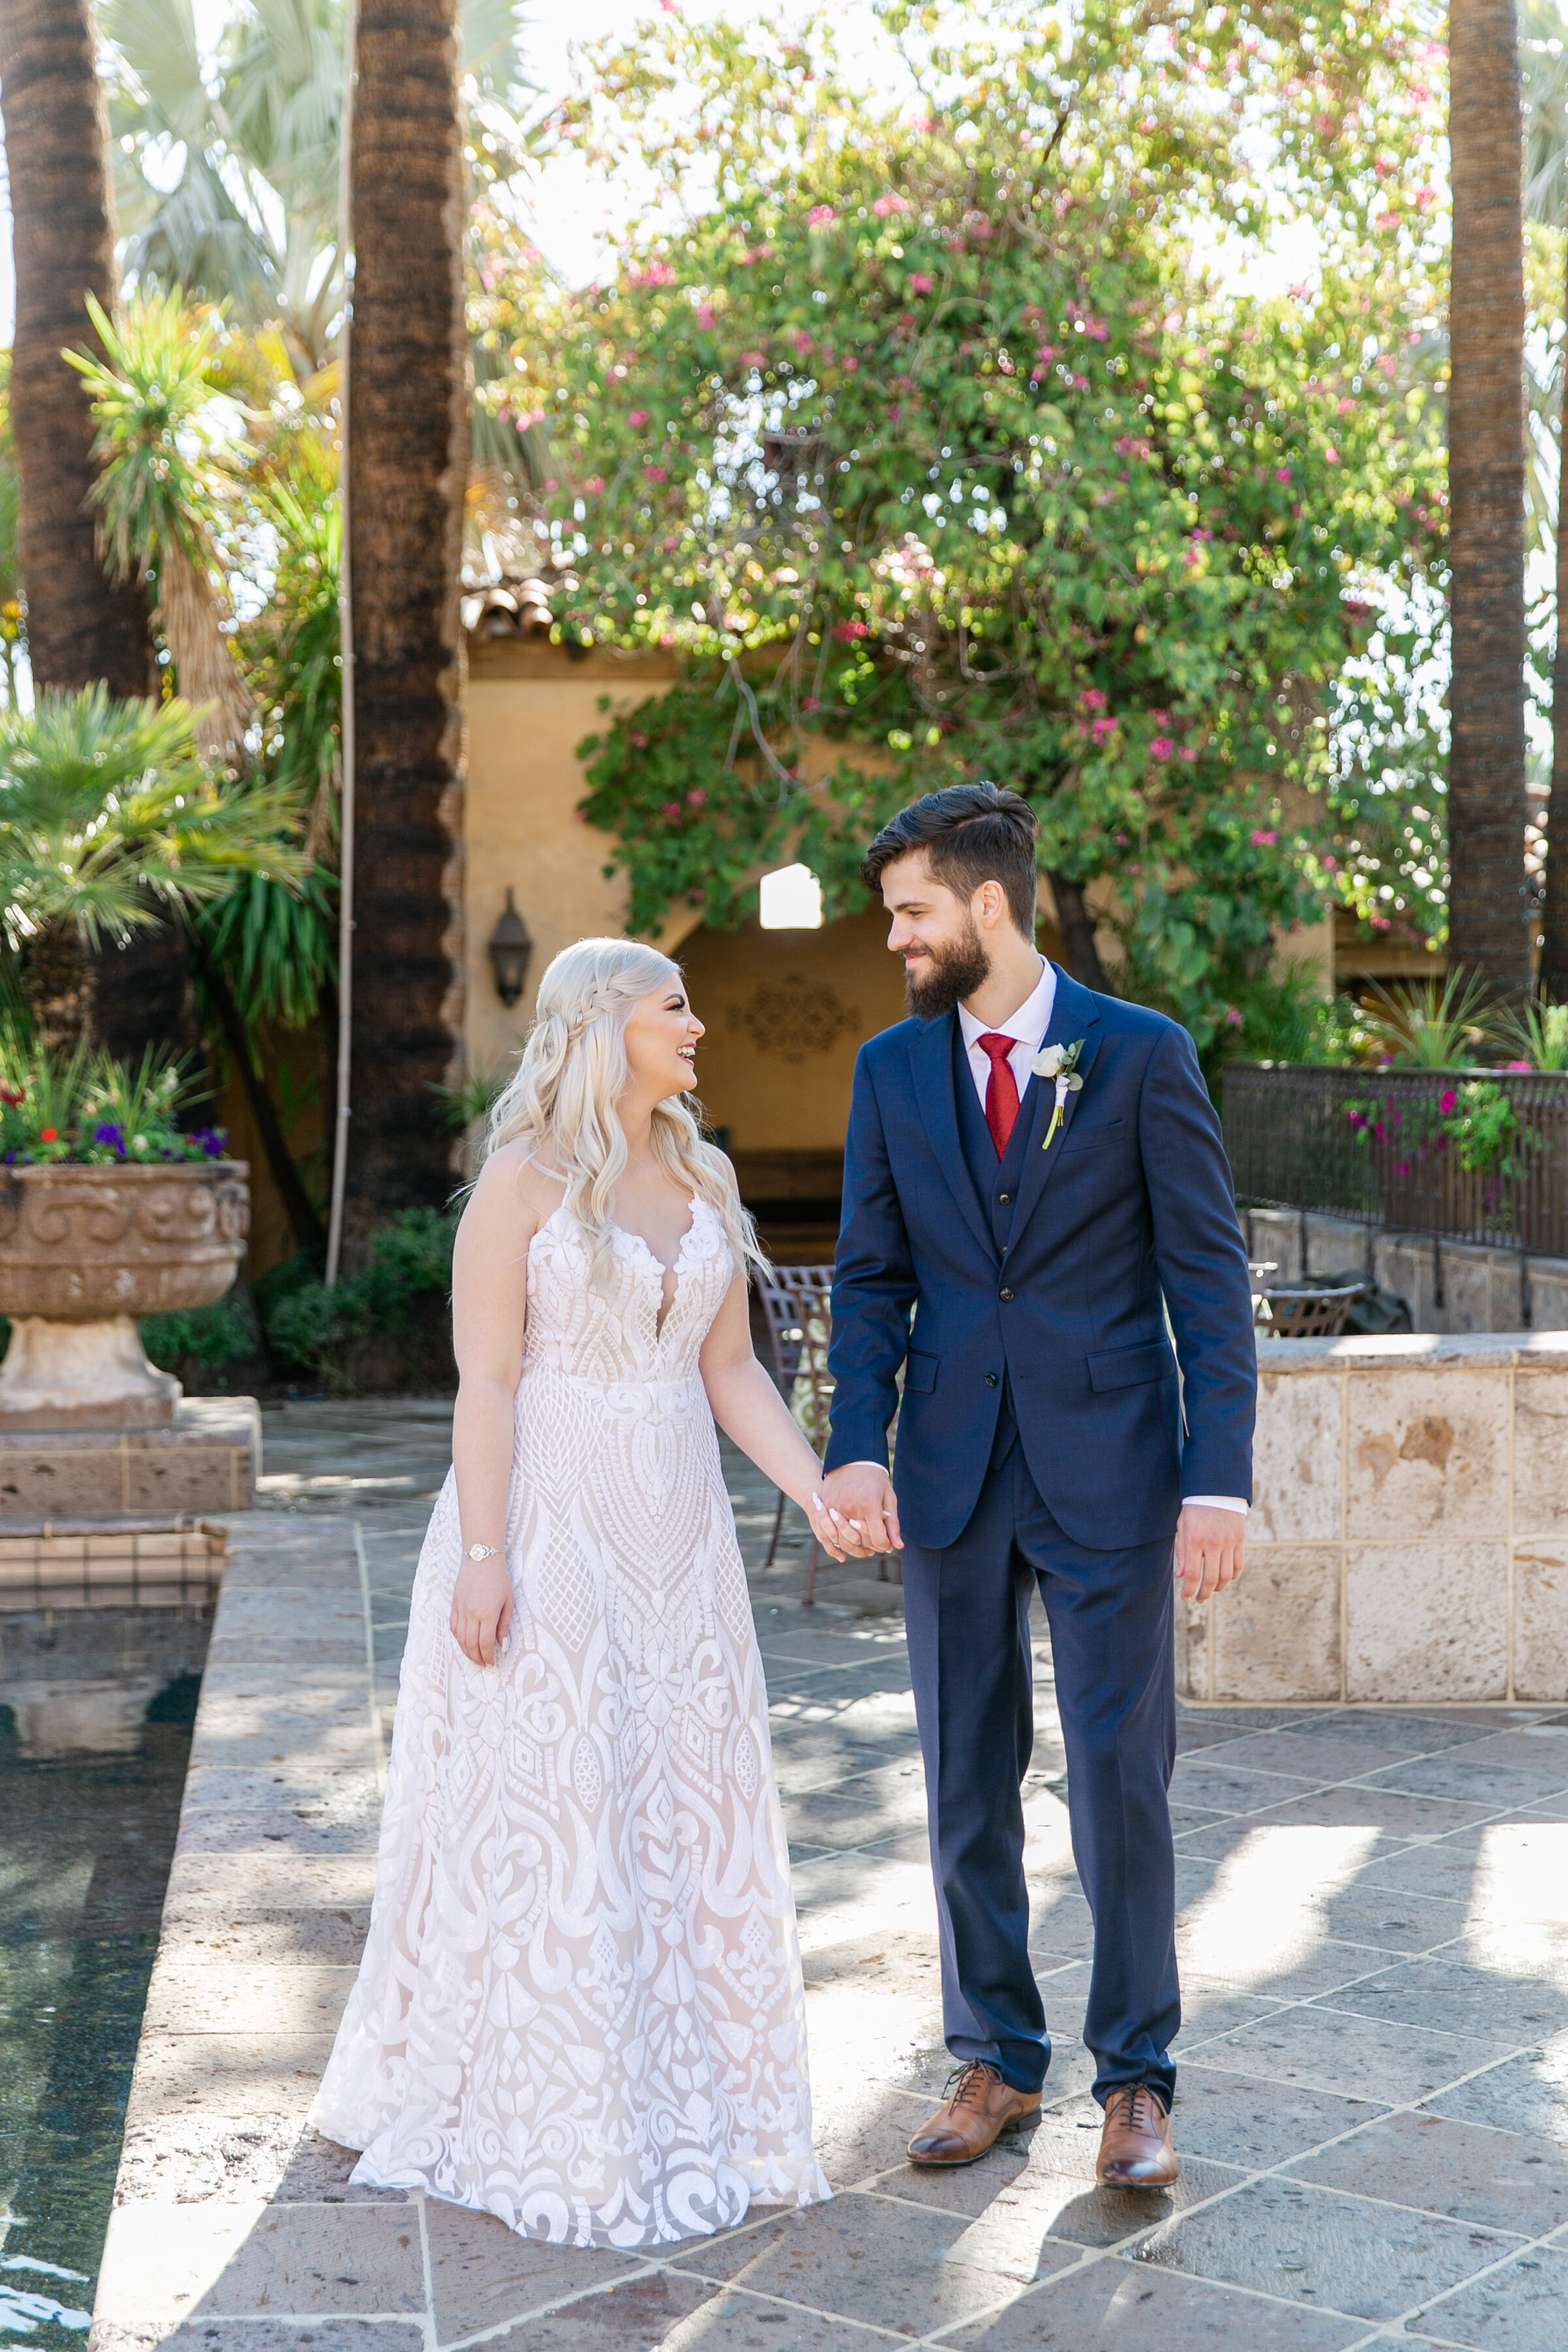 Karlie Colleen Photography - The Royal Palms Wedding - Some Like It Classic - Alex & Sam-132